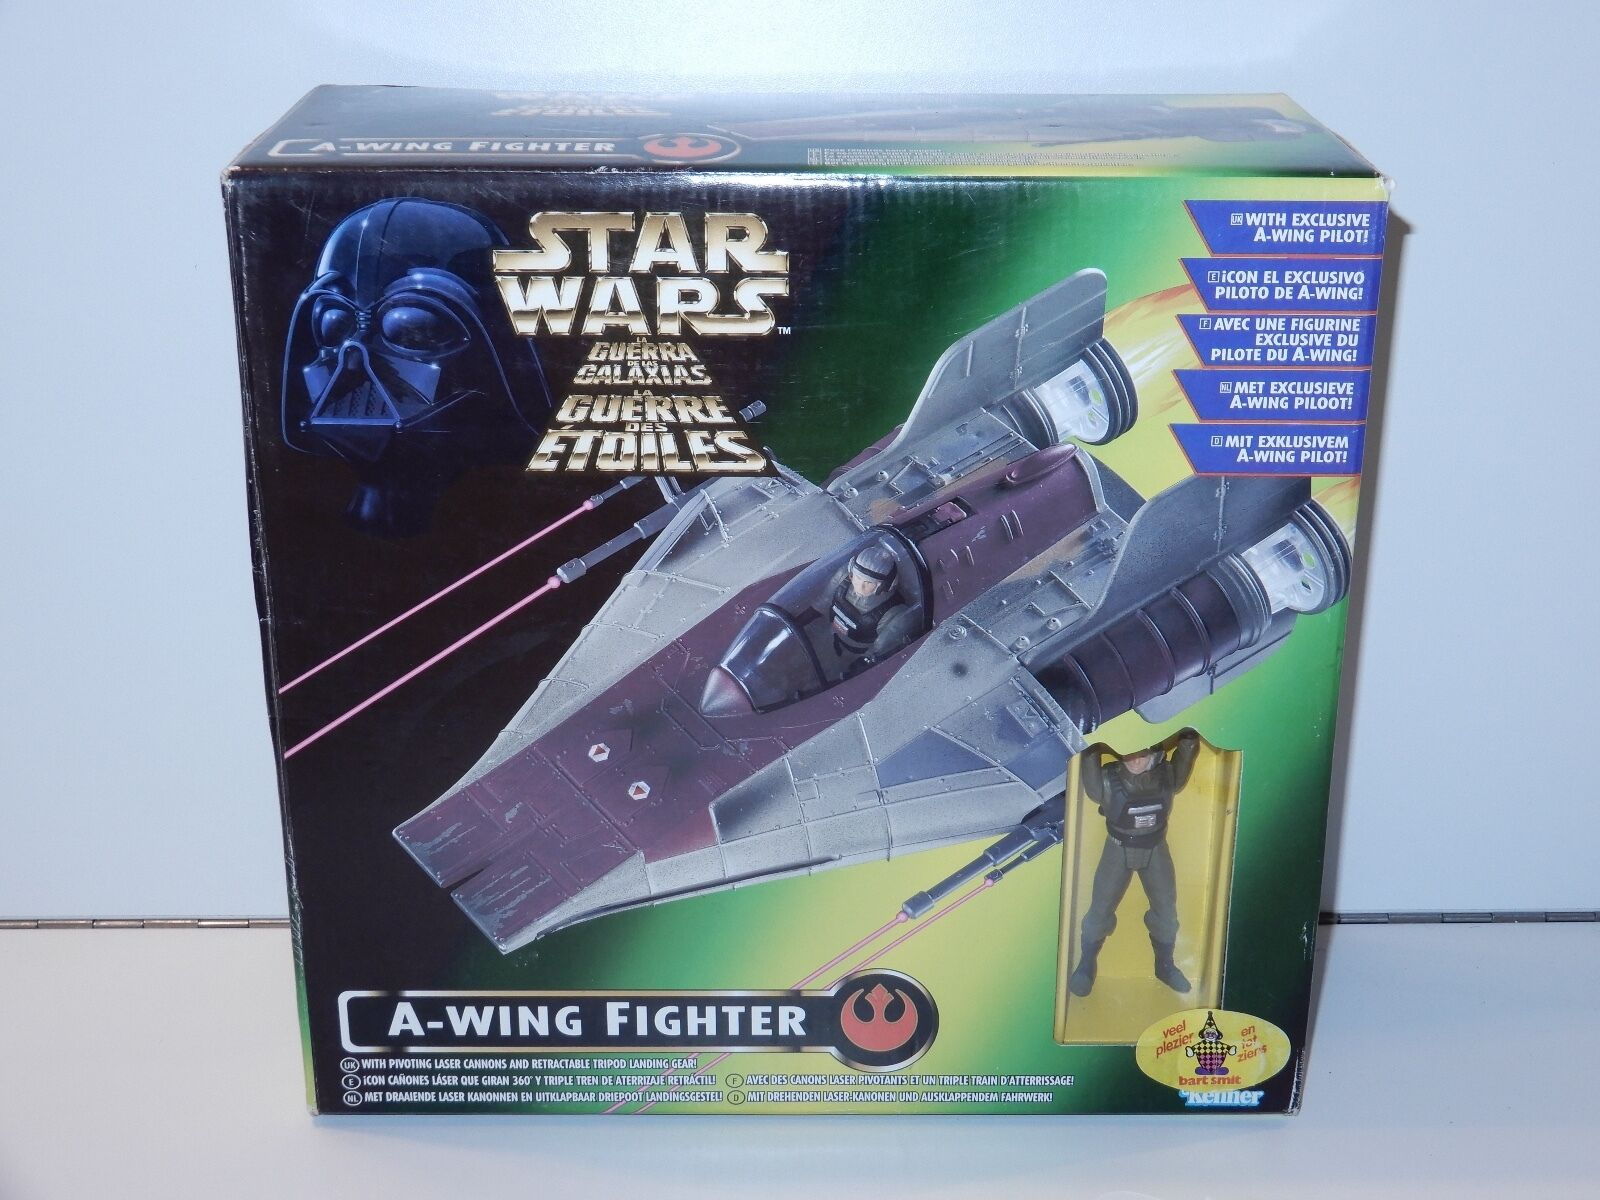 STAR WARS 1996 POTF2 A-WING FIGHTER MIB TRI-LOGO BOX KENNER